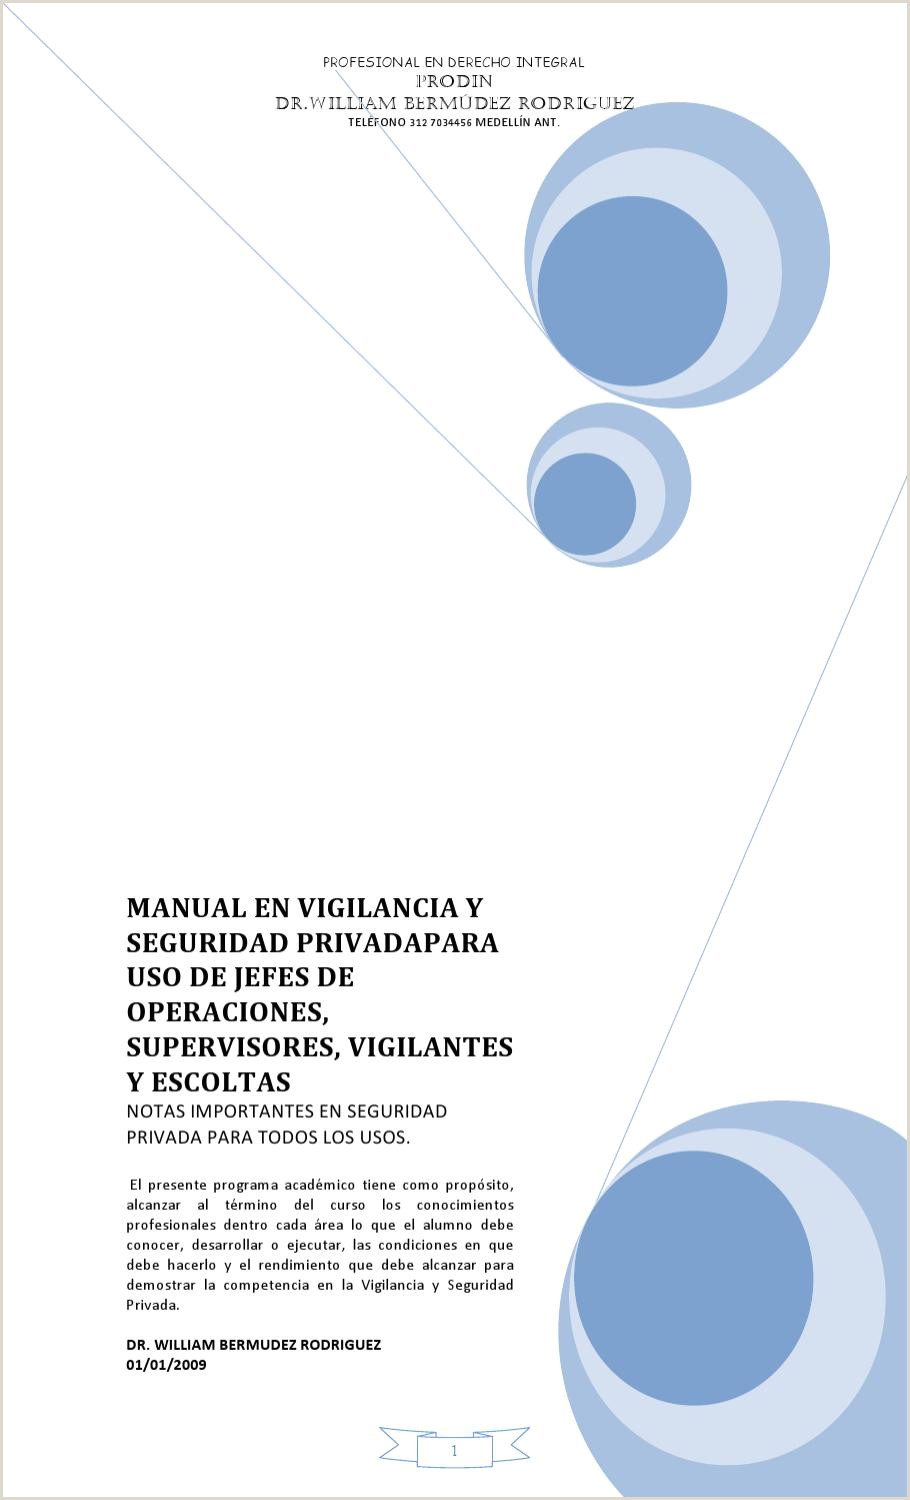 Formato Hoja De Vida Brigadista Manual De Vigilancia Y Seguridad Privada by William Bermudez